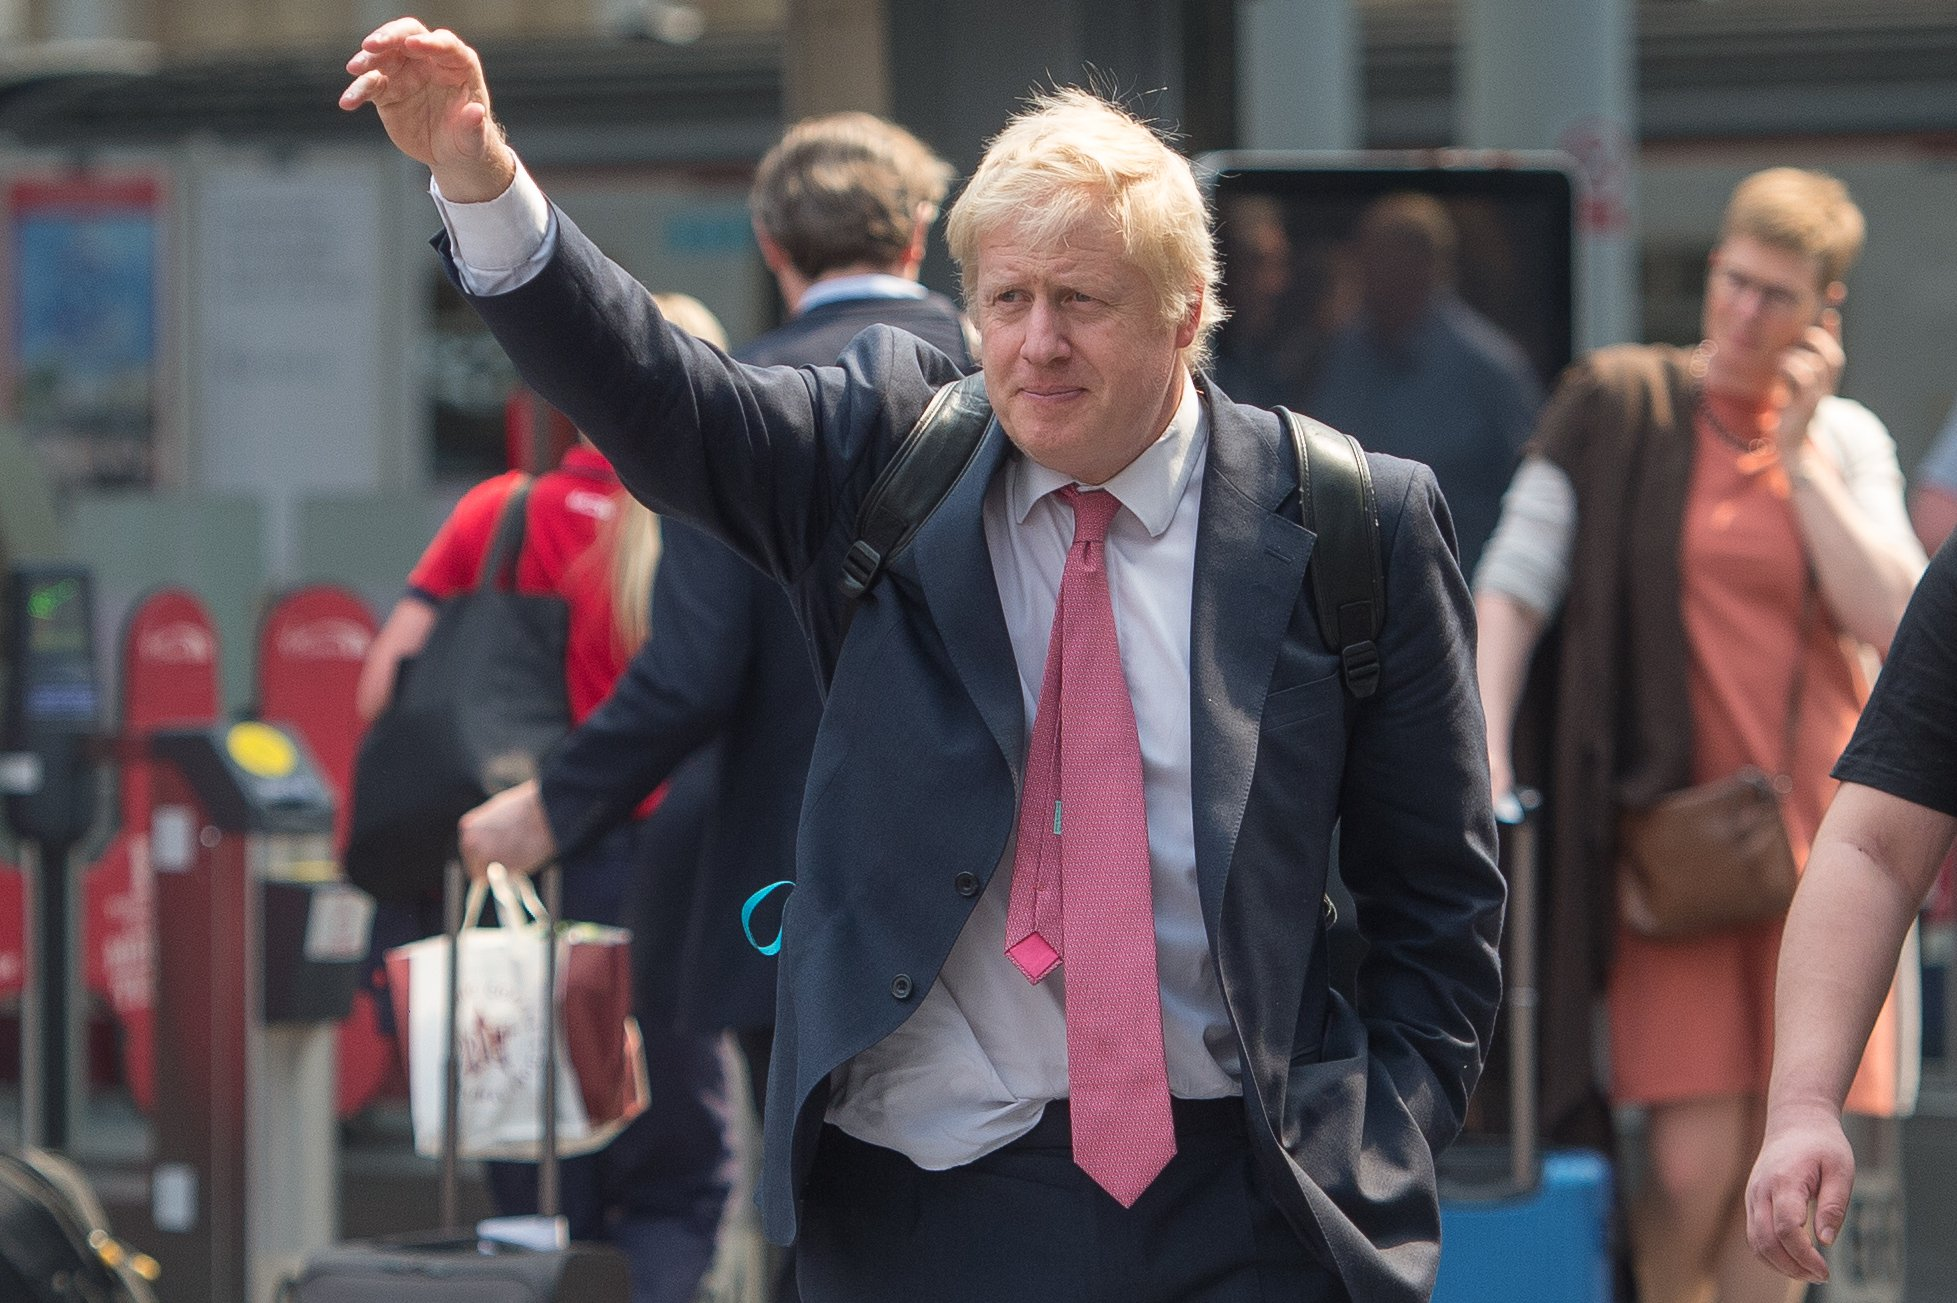 Boris Johnson announces plan to stand as Conservative party leader